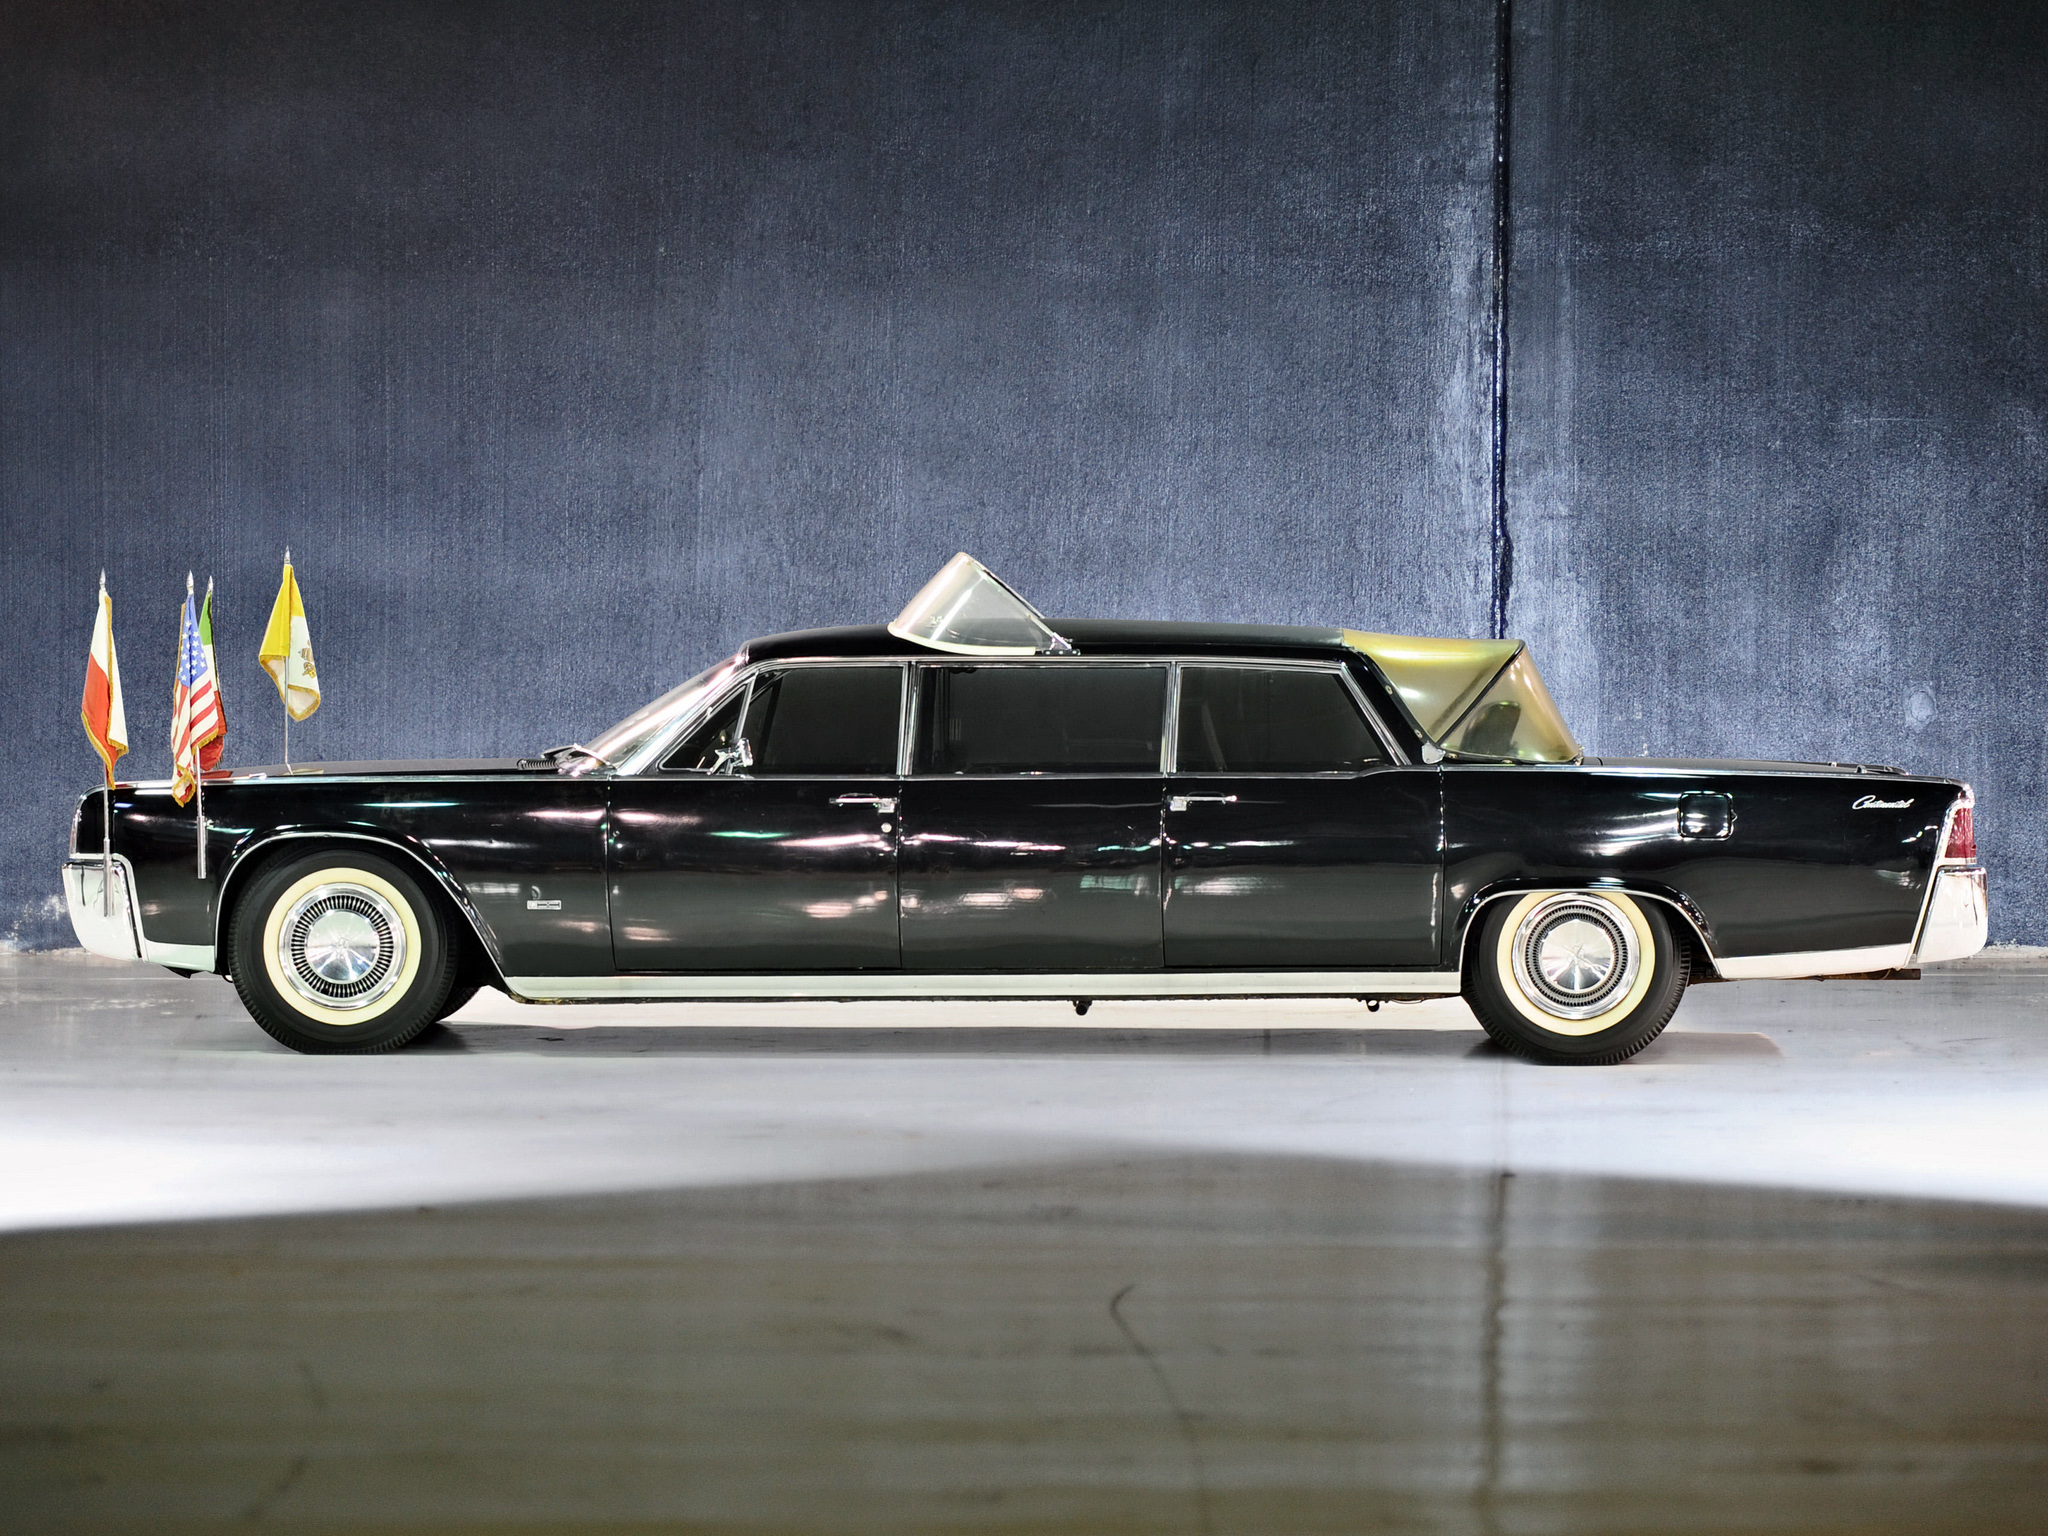 1964 lincoln continental limousine popemobile by lehmann peterson classic luxury wallpaper. Black Bedroom Furniture Sets. Home Design Ideas